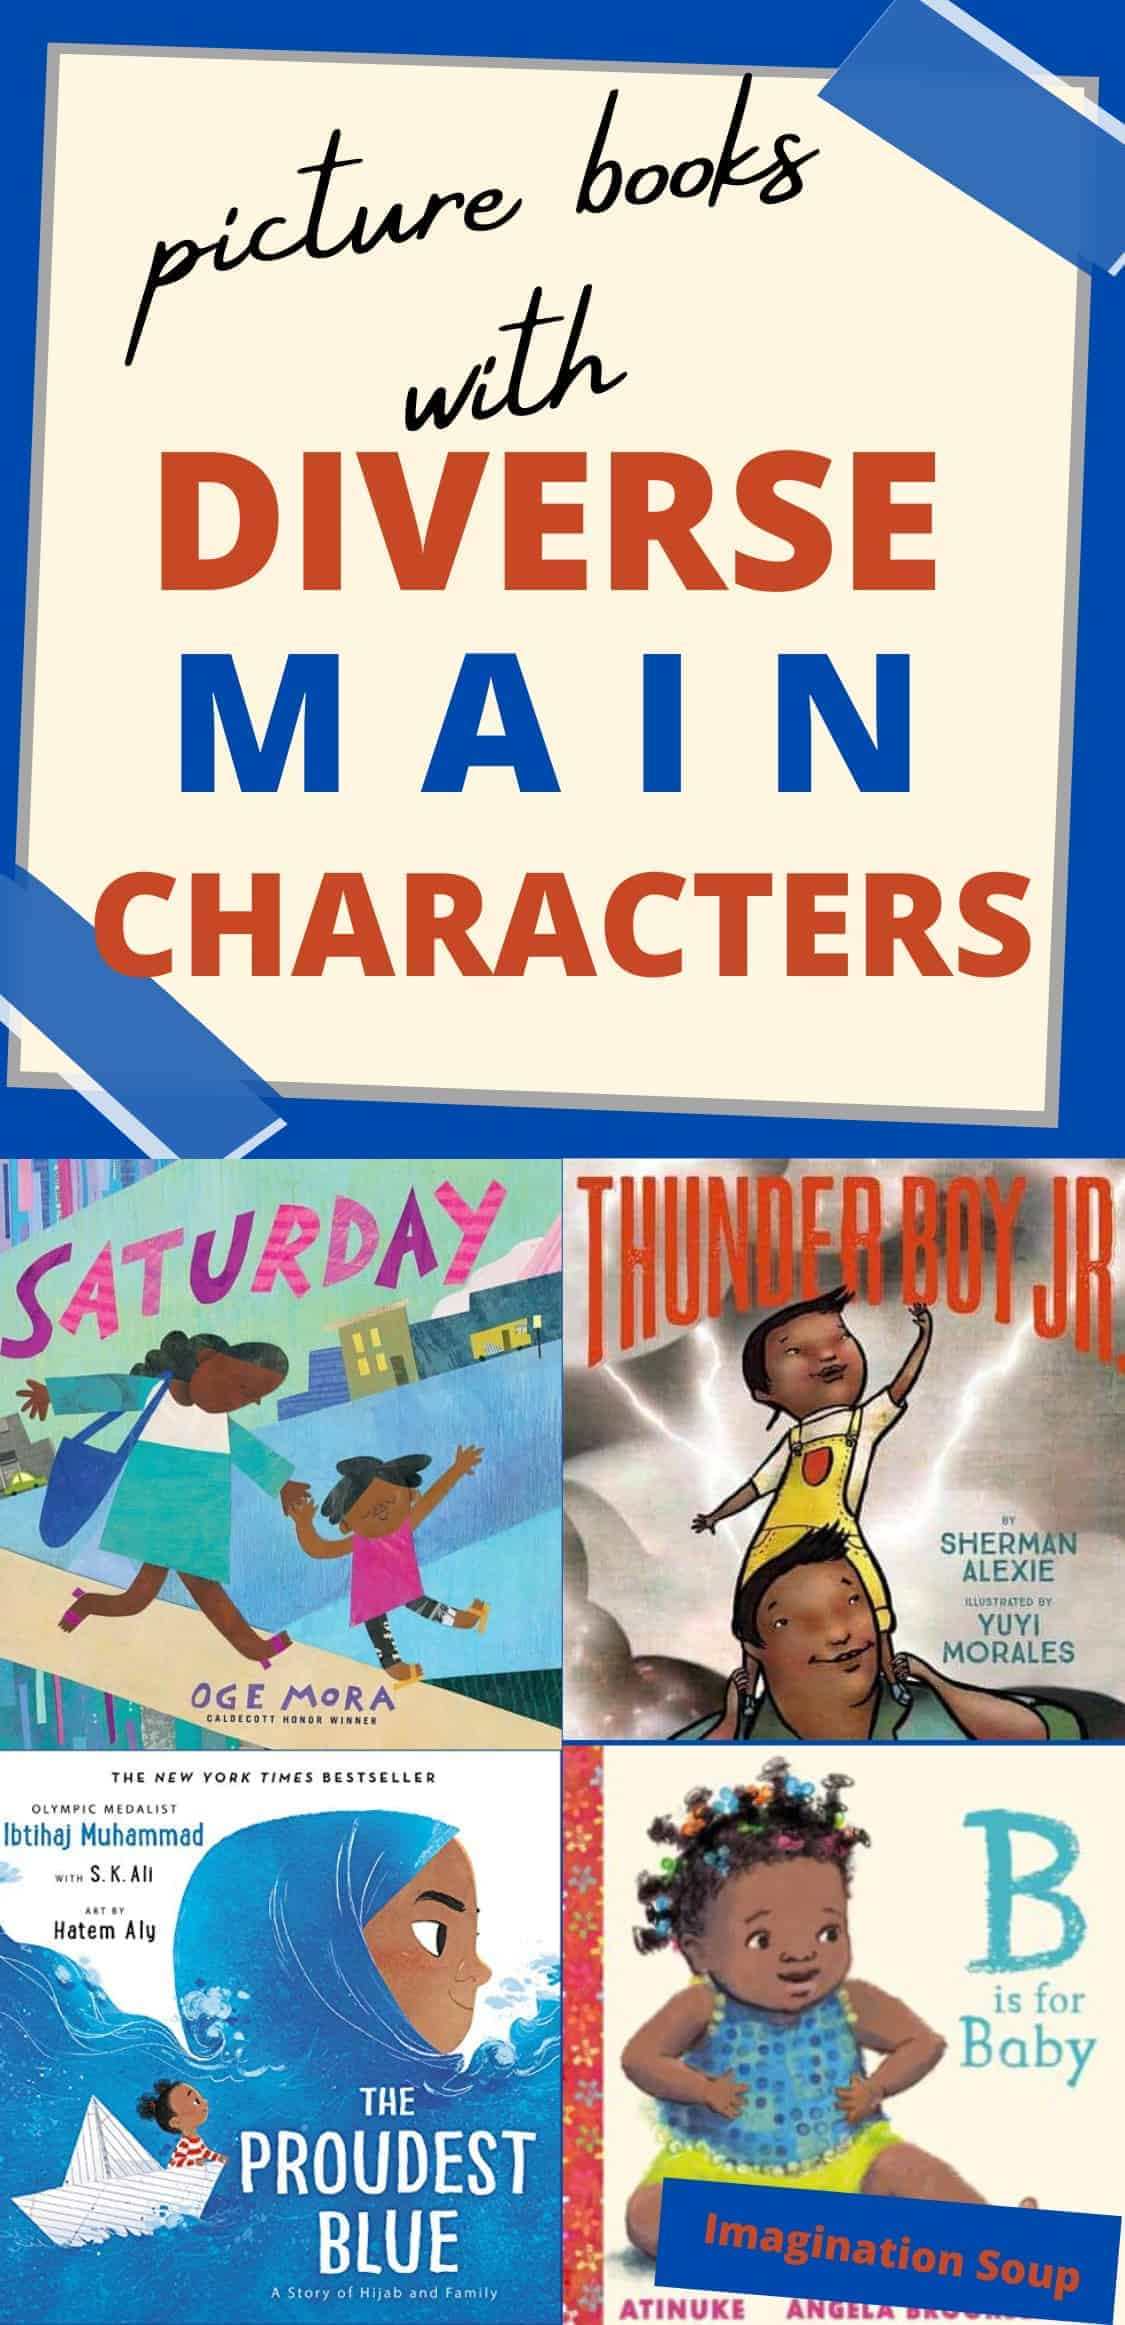 picture books with diverse main characters